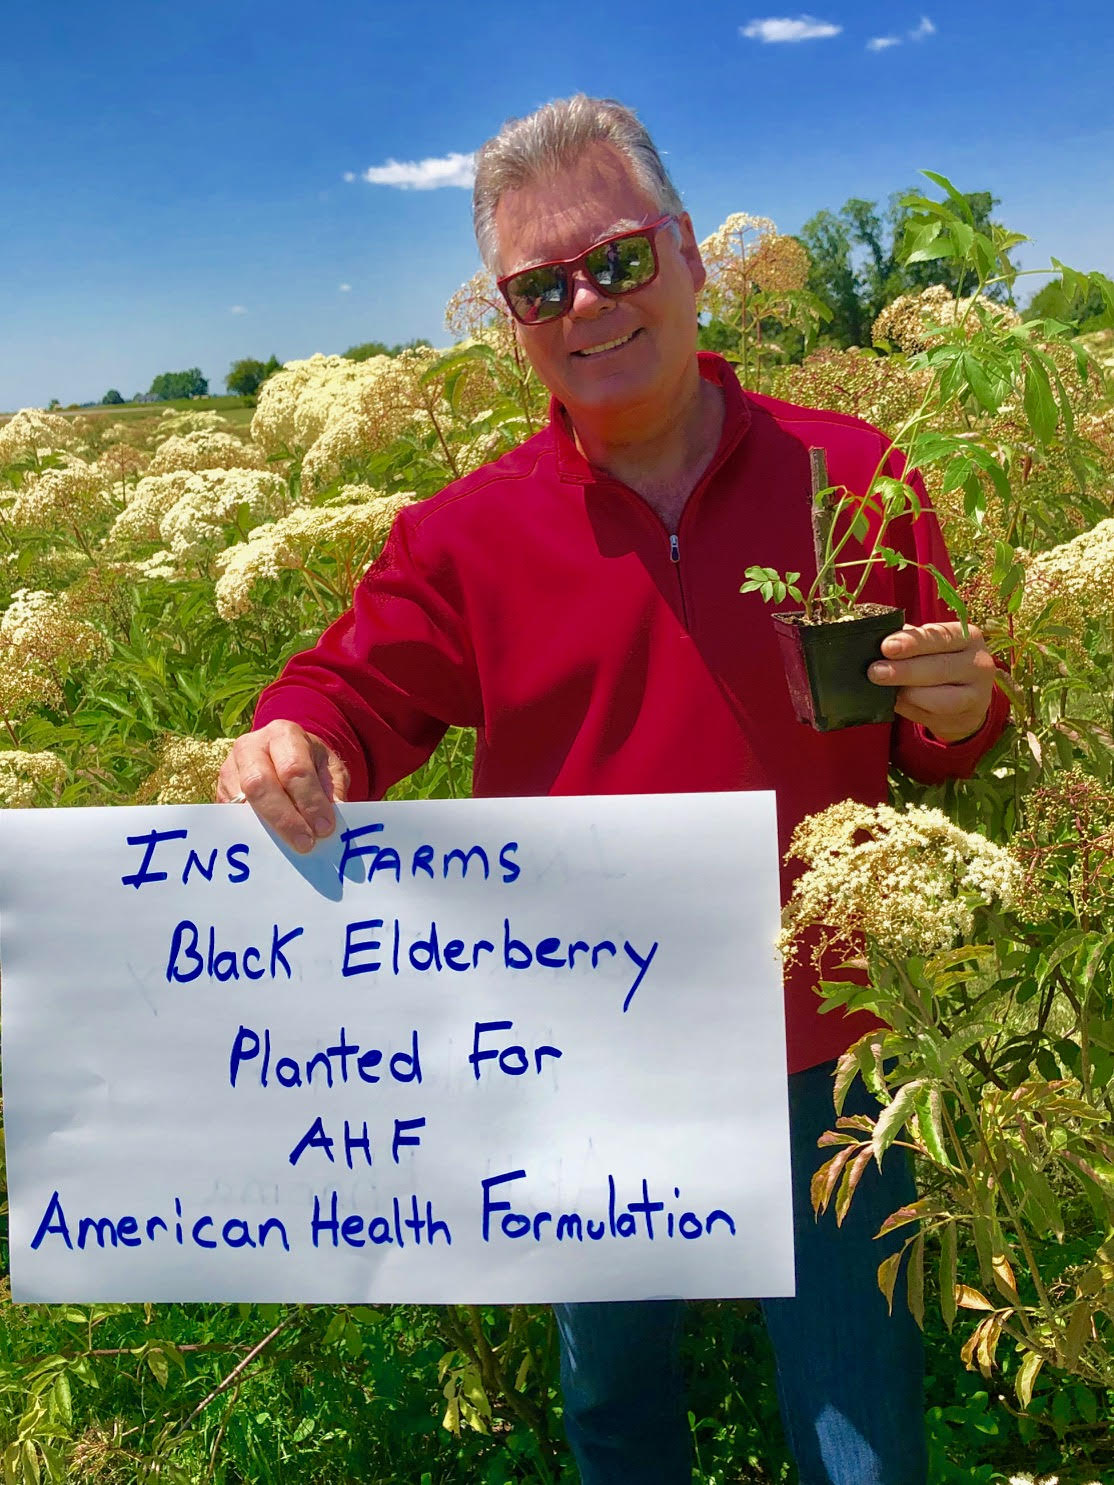 Plant-Elderberry-American-Health-Formulation.jpg